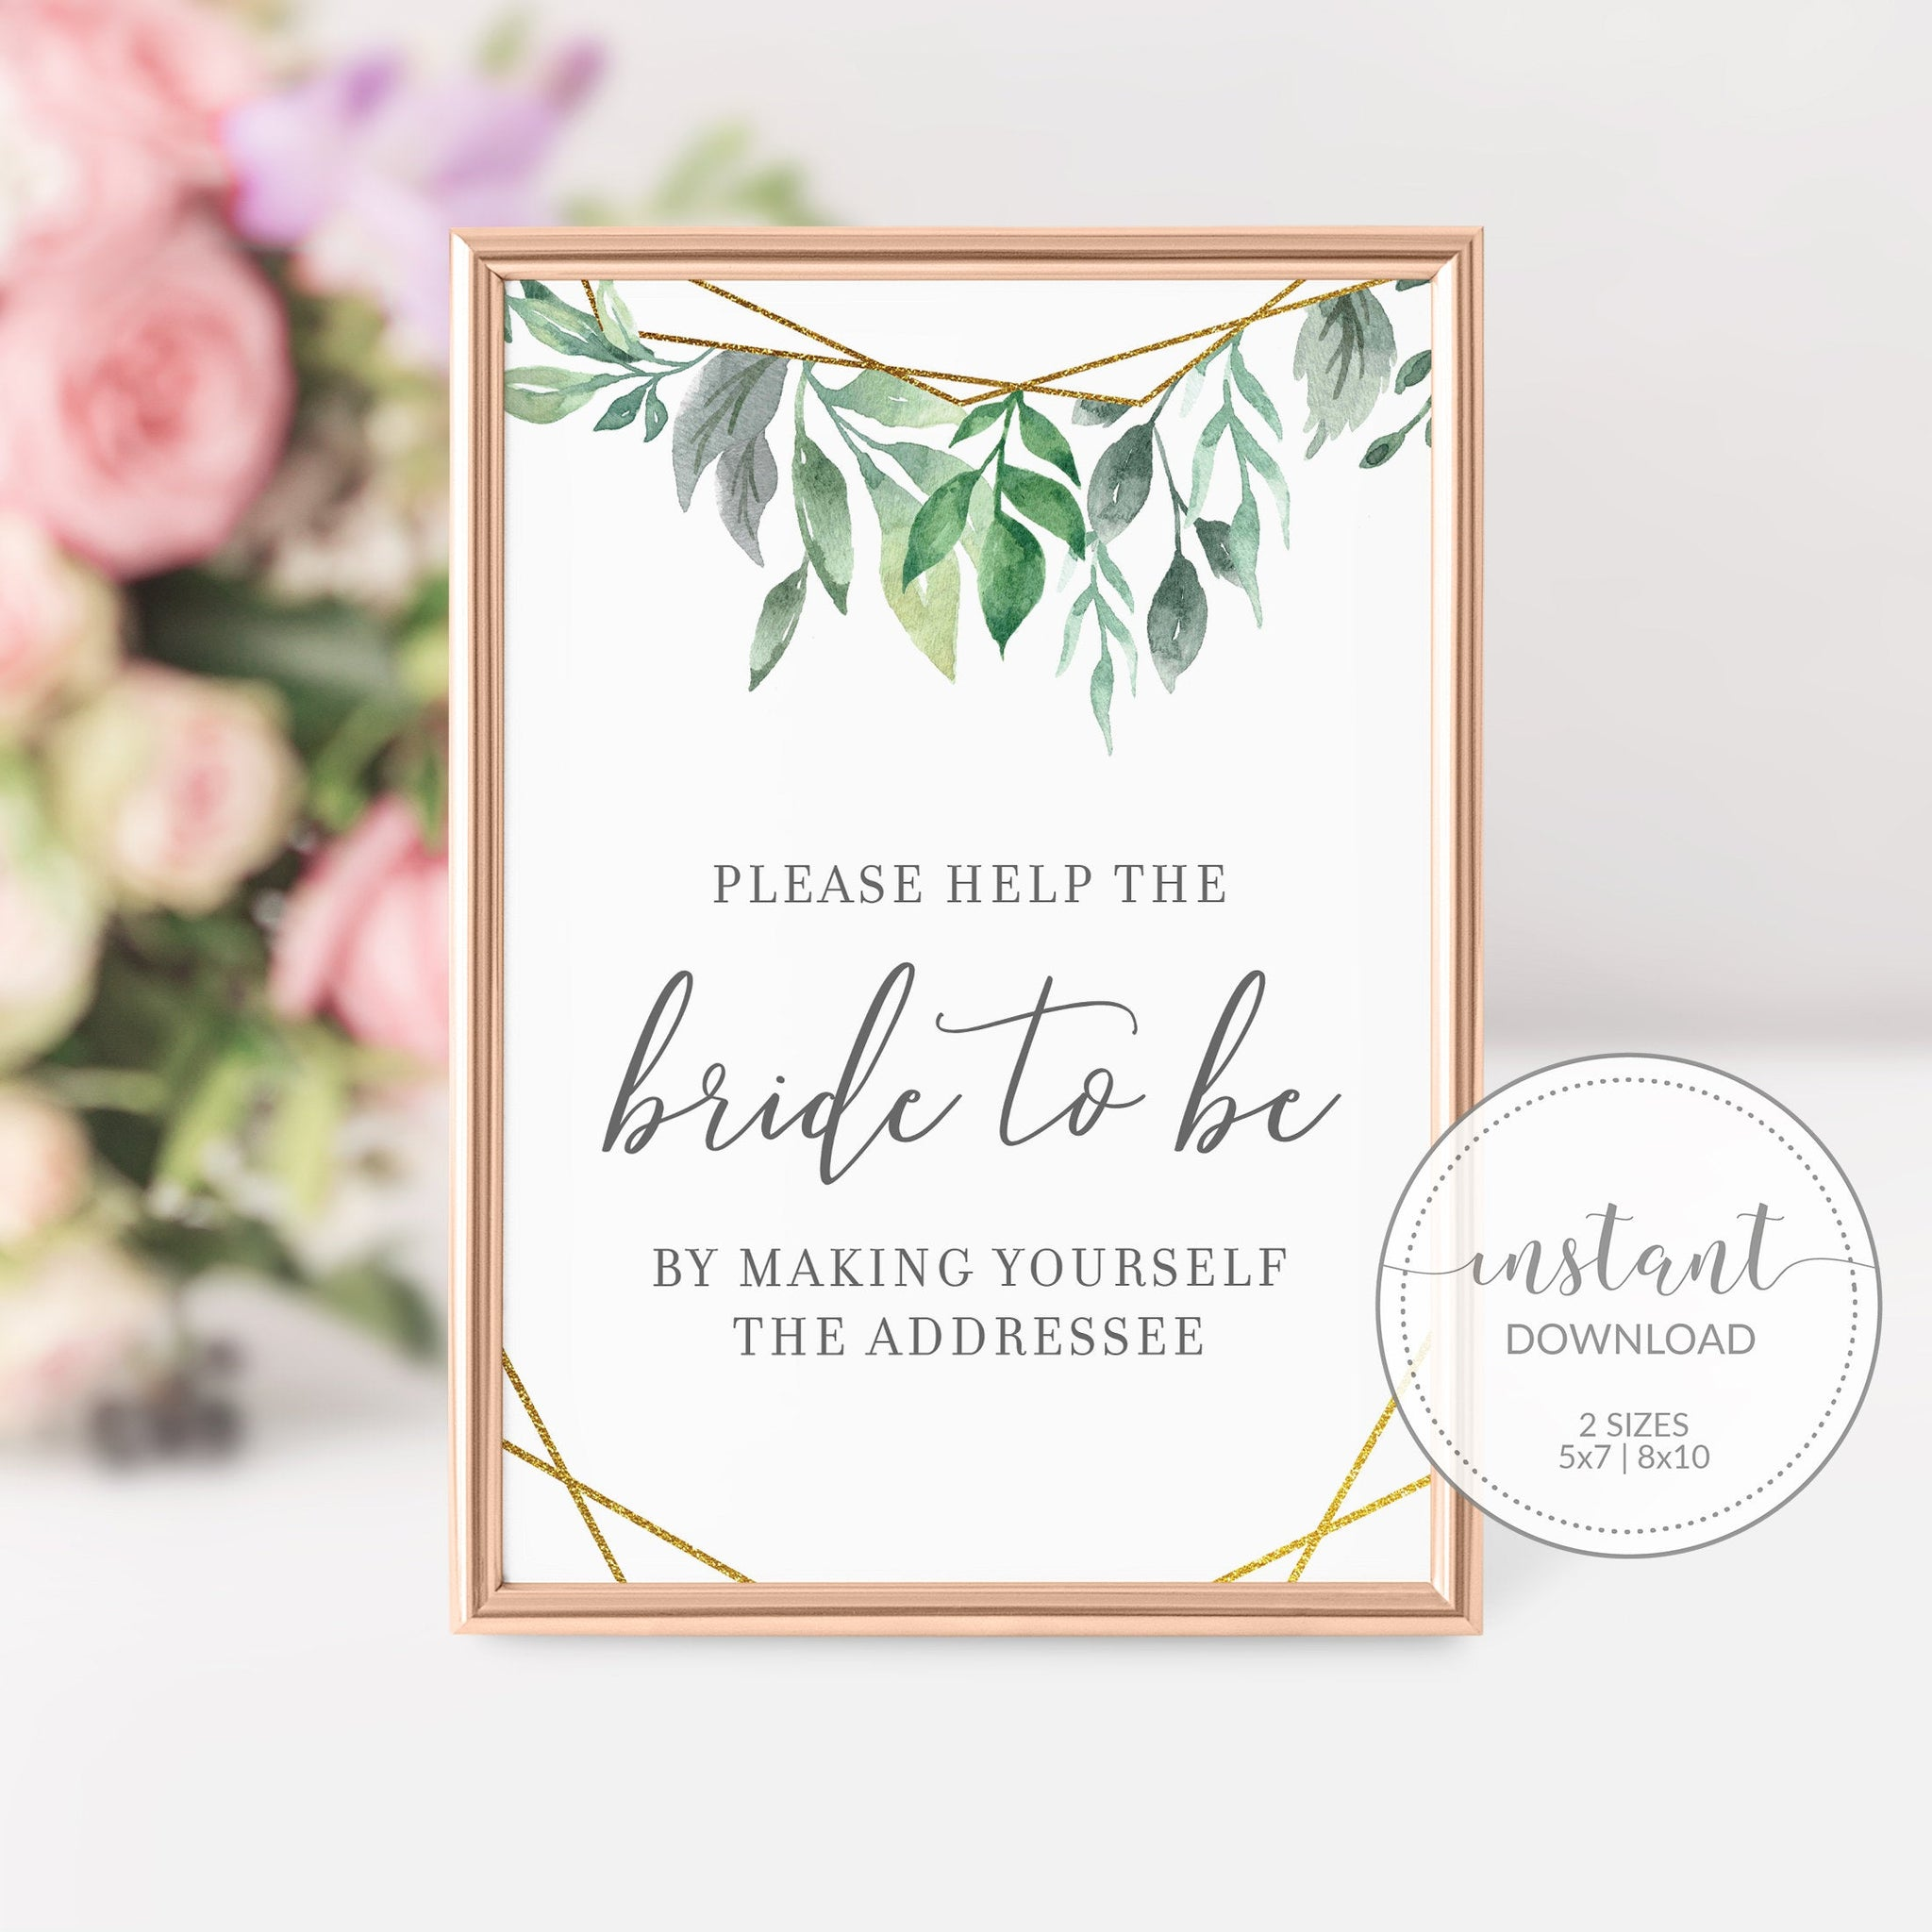 Geometric Gold Greenery Printable Bridal Shower Address an Envelope Sign INSTANT DOWNLOAD, Bridal Shower Decorations and Supplies - GFG100 - @PlumPolkaDot